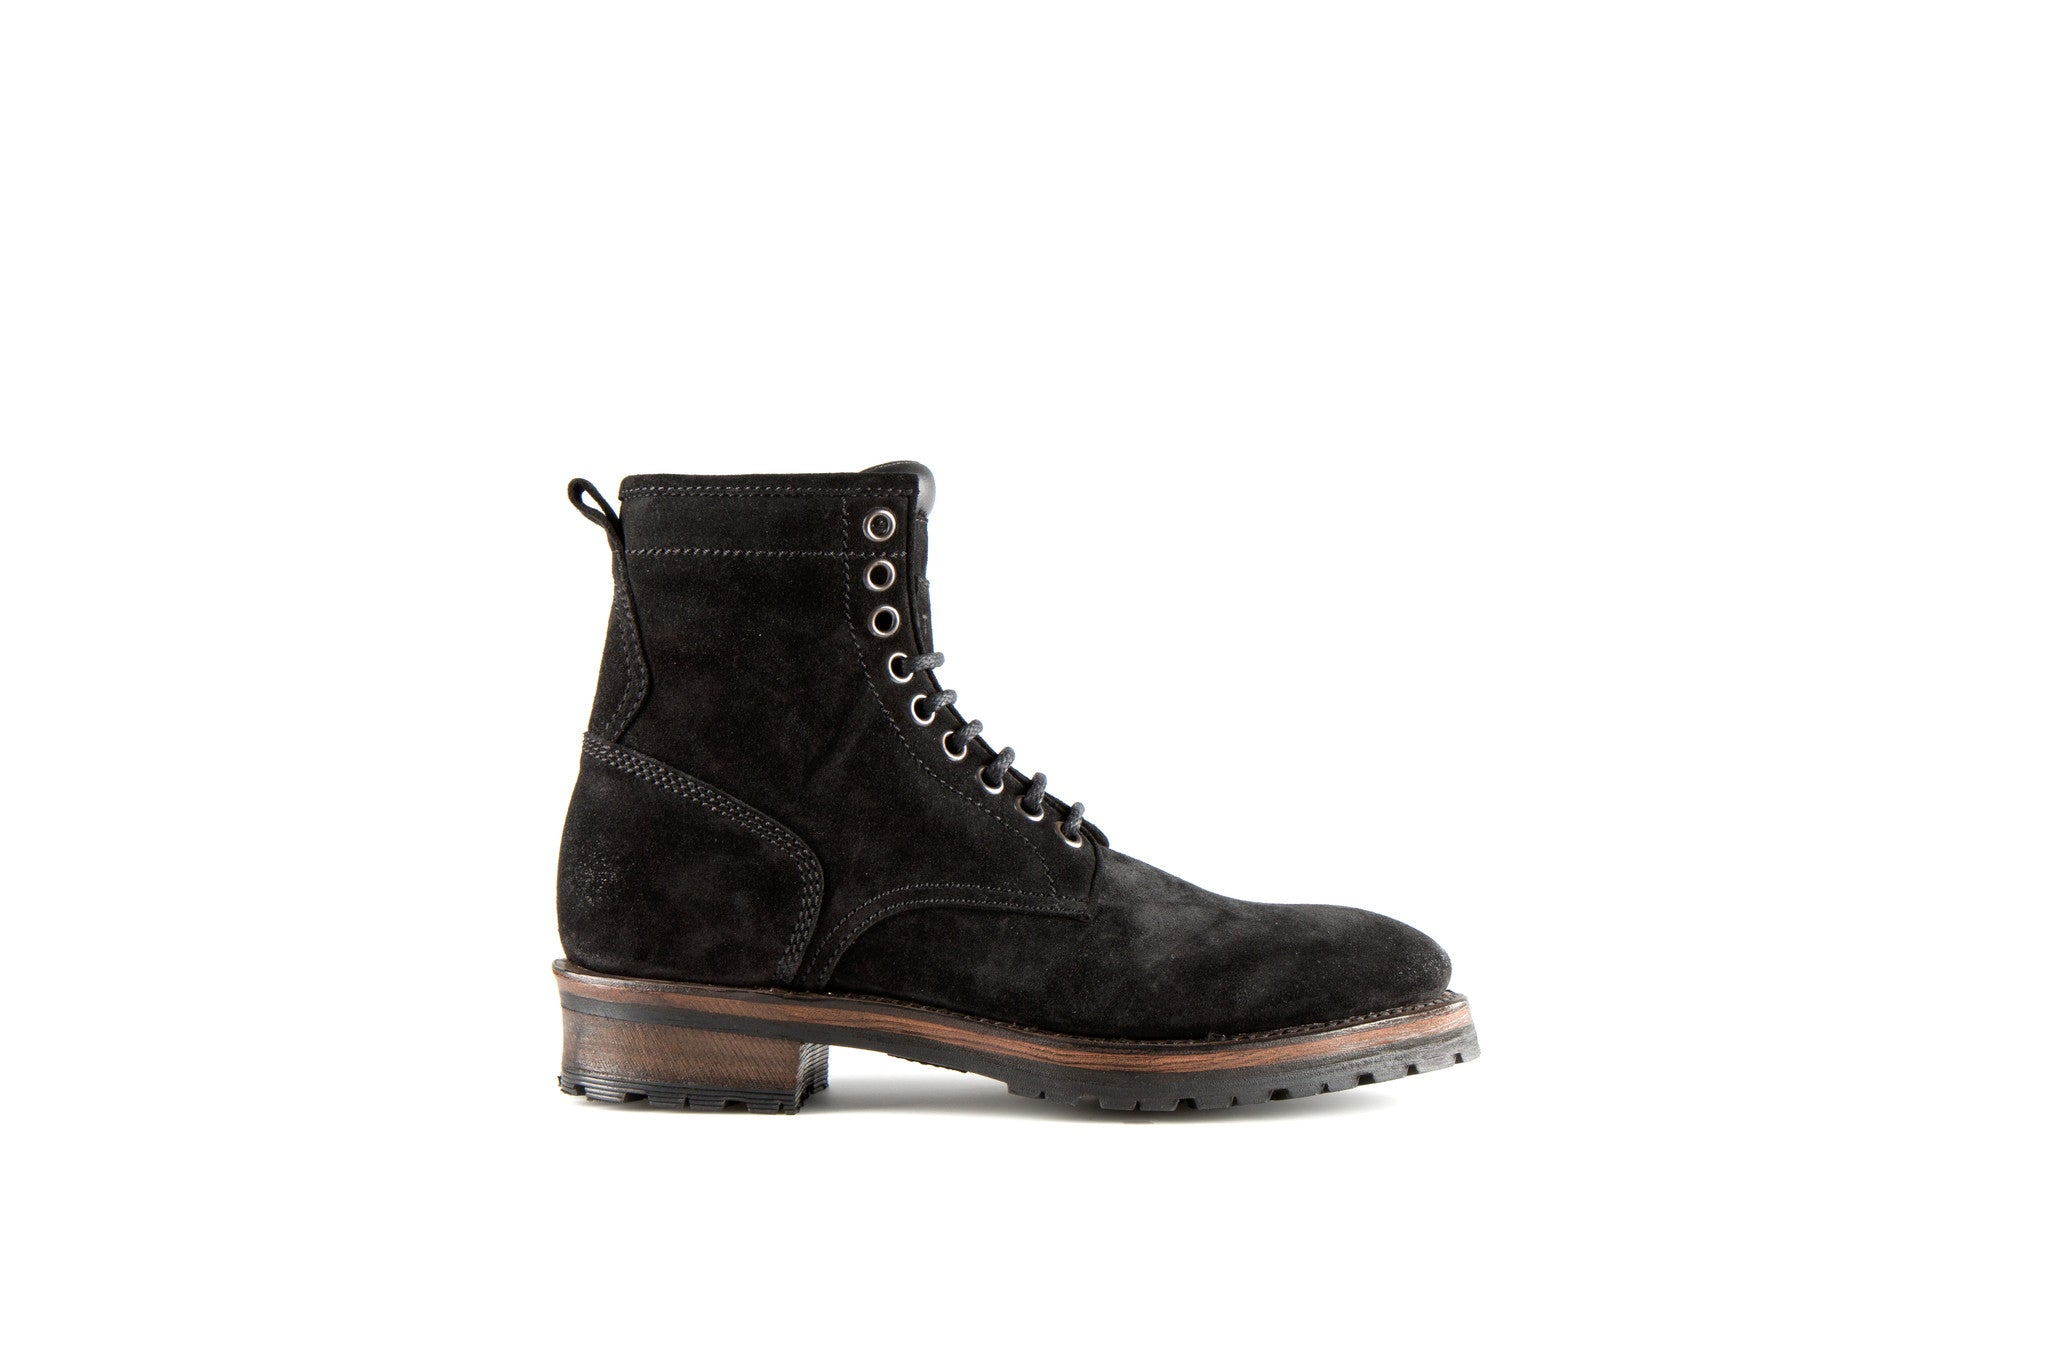 Royal Black Suede Leather Logger Boots